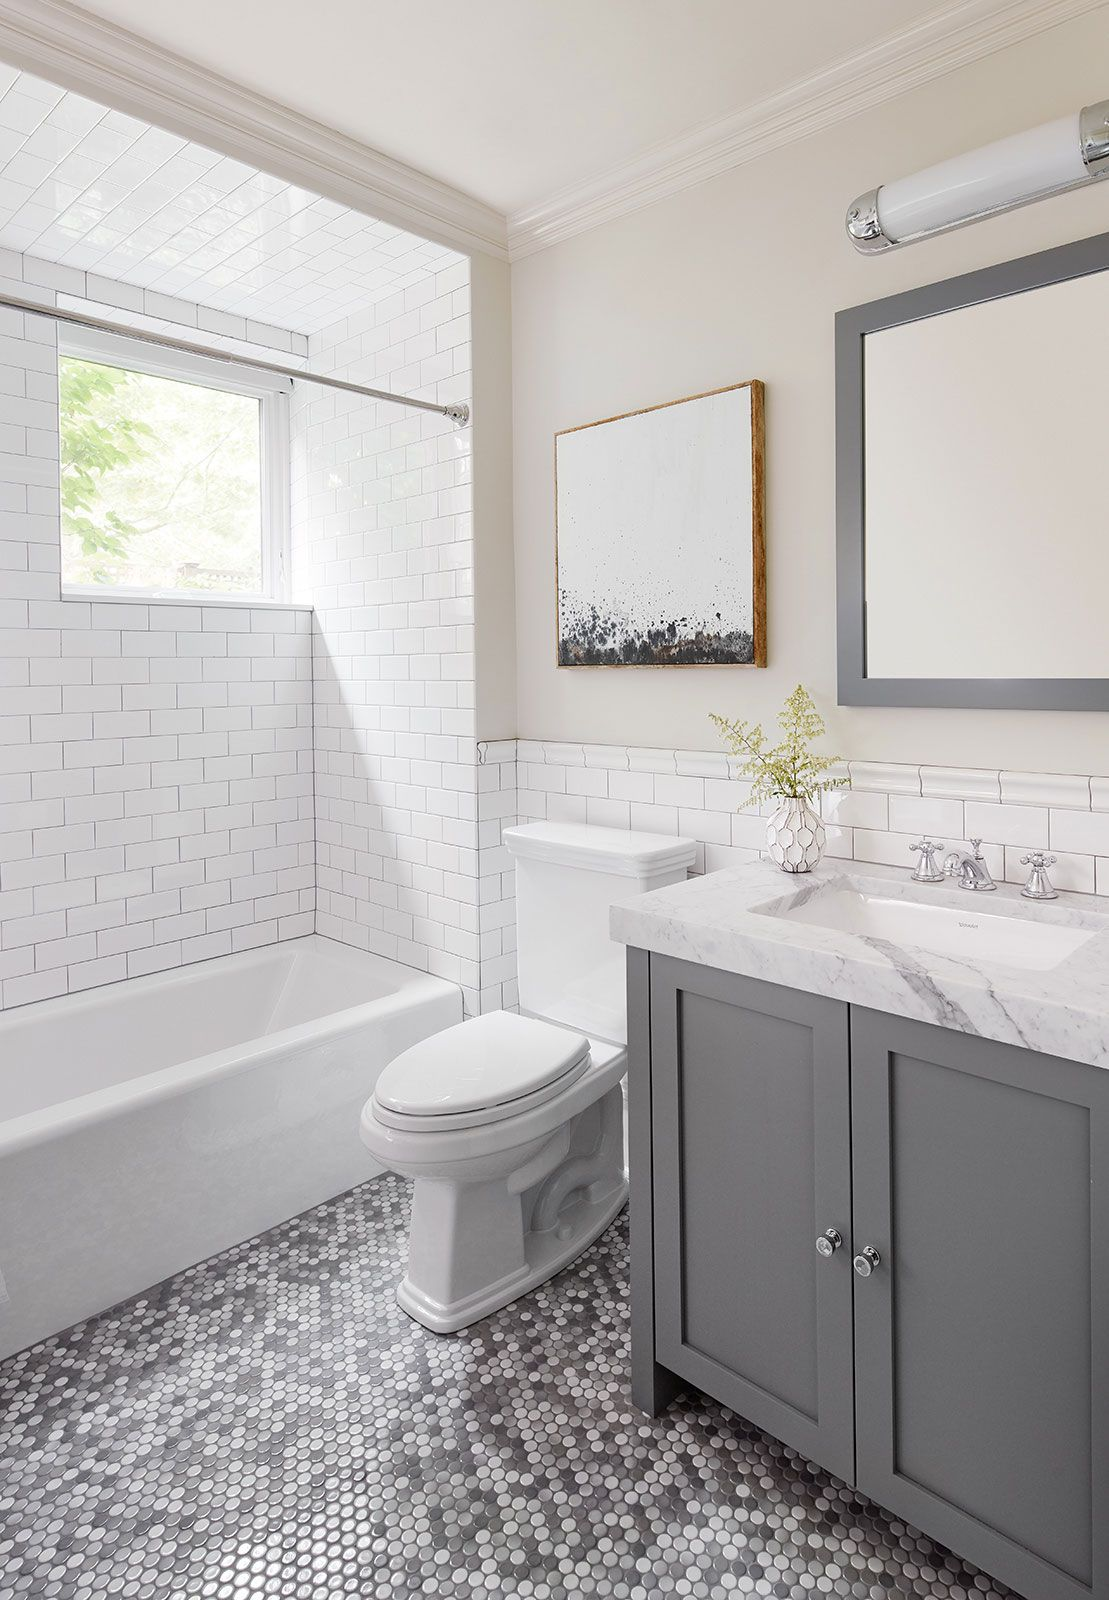 Chic Silver Bathroo Design With Penny Tile Flooring 2to5 Design